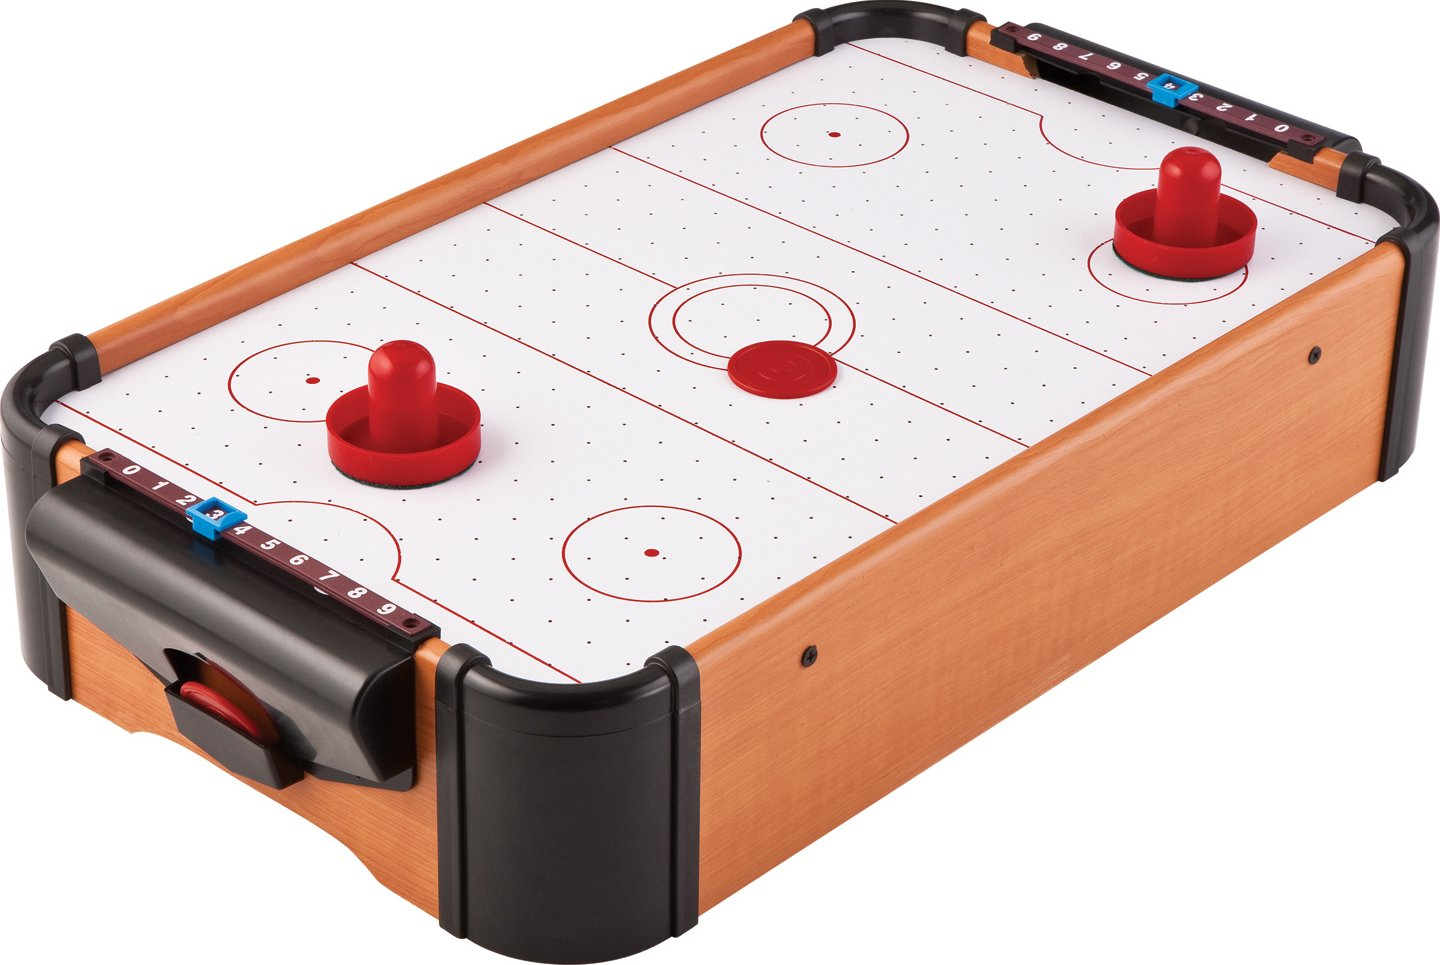 Mainstreet Classics 22-Inch Table Top Air Hockey Game GLD Products 55-0503